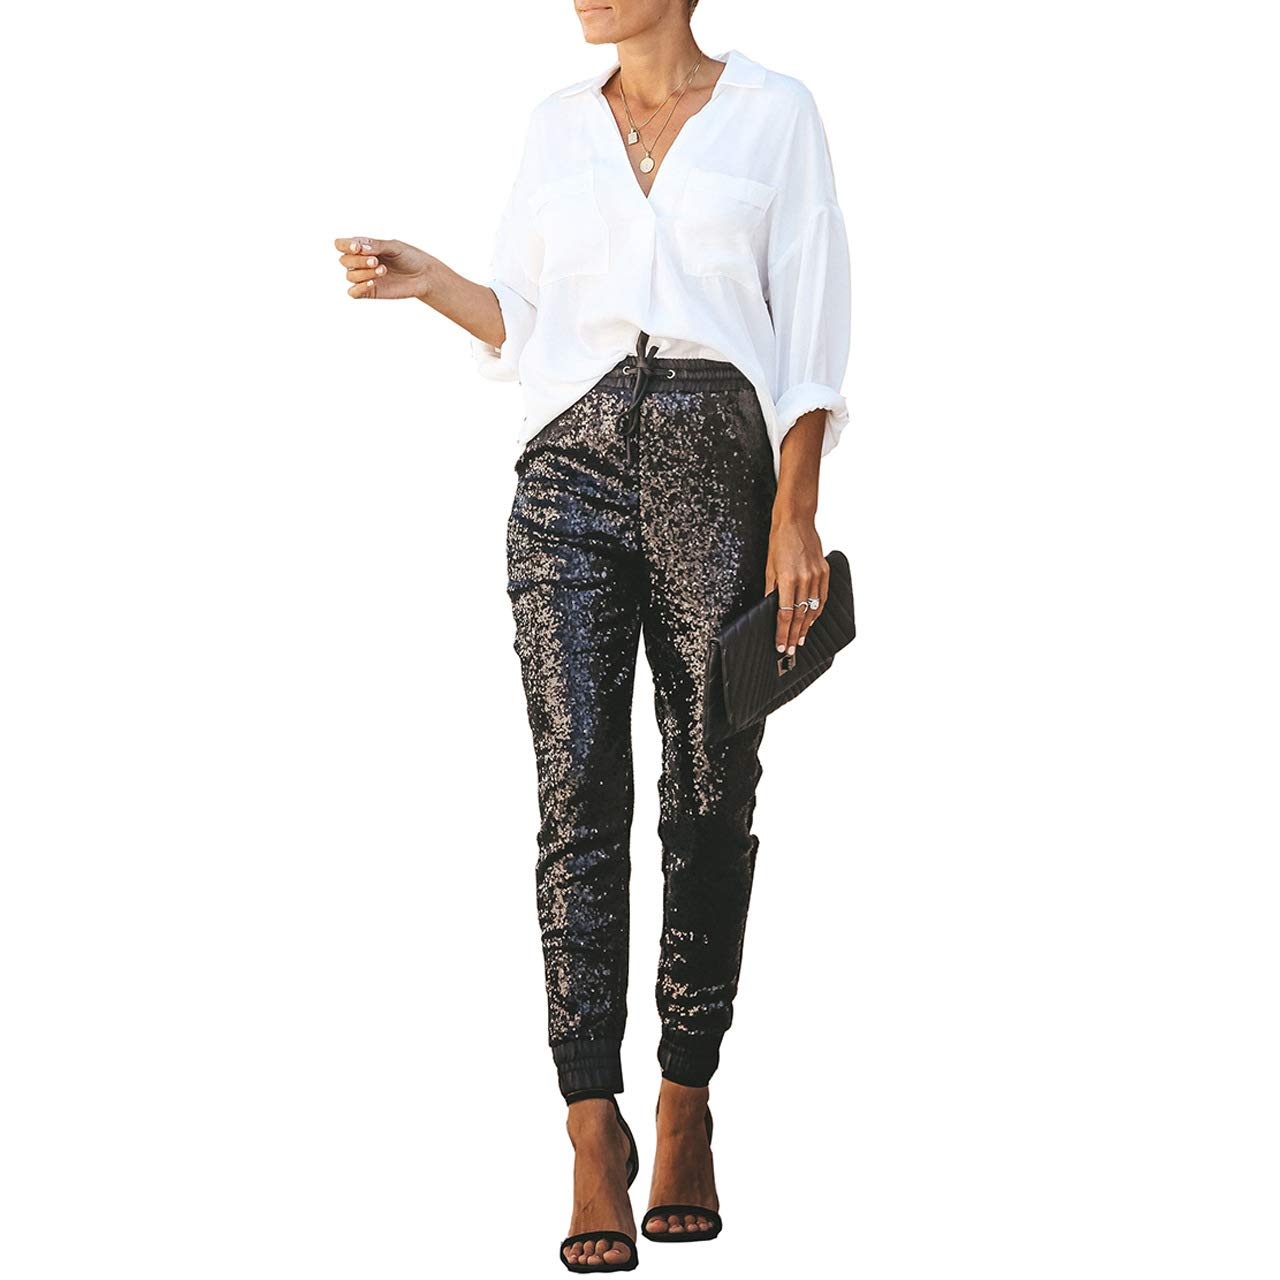 Salimdy Womens Fashion Sequin Pencil Pants with Drawstring Faux Leather Patchwork Glitter Long Trousers